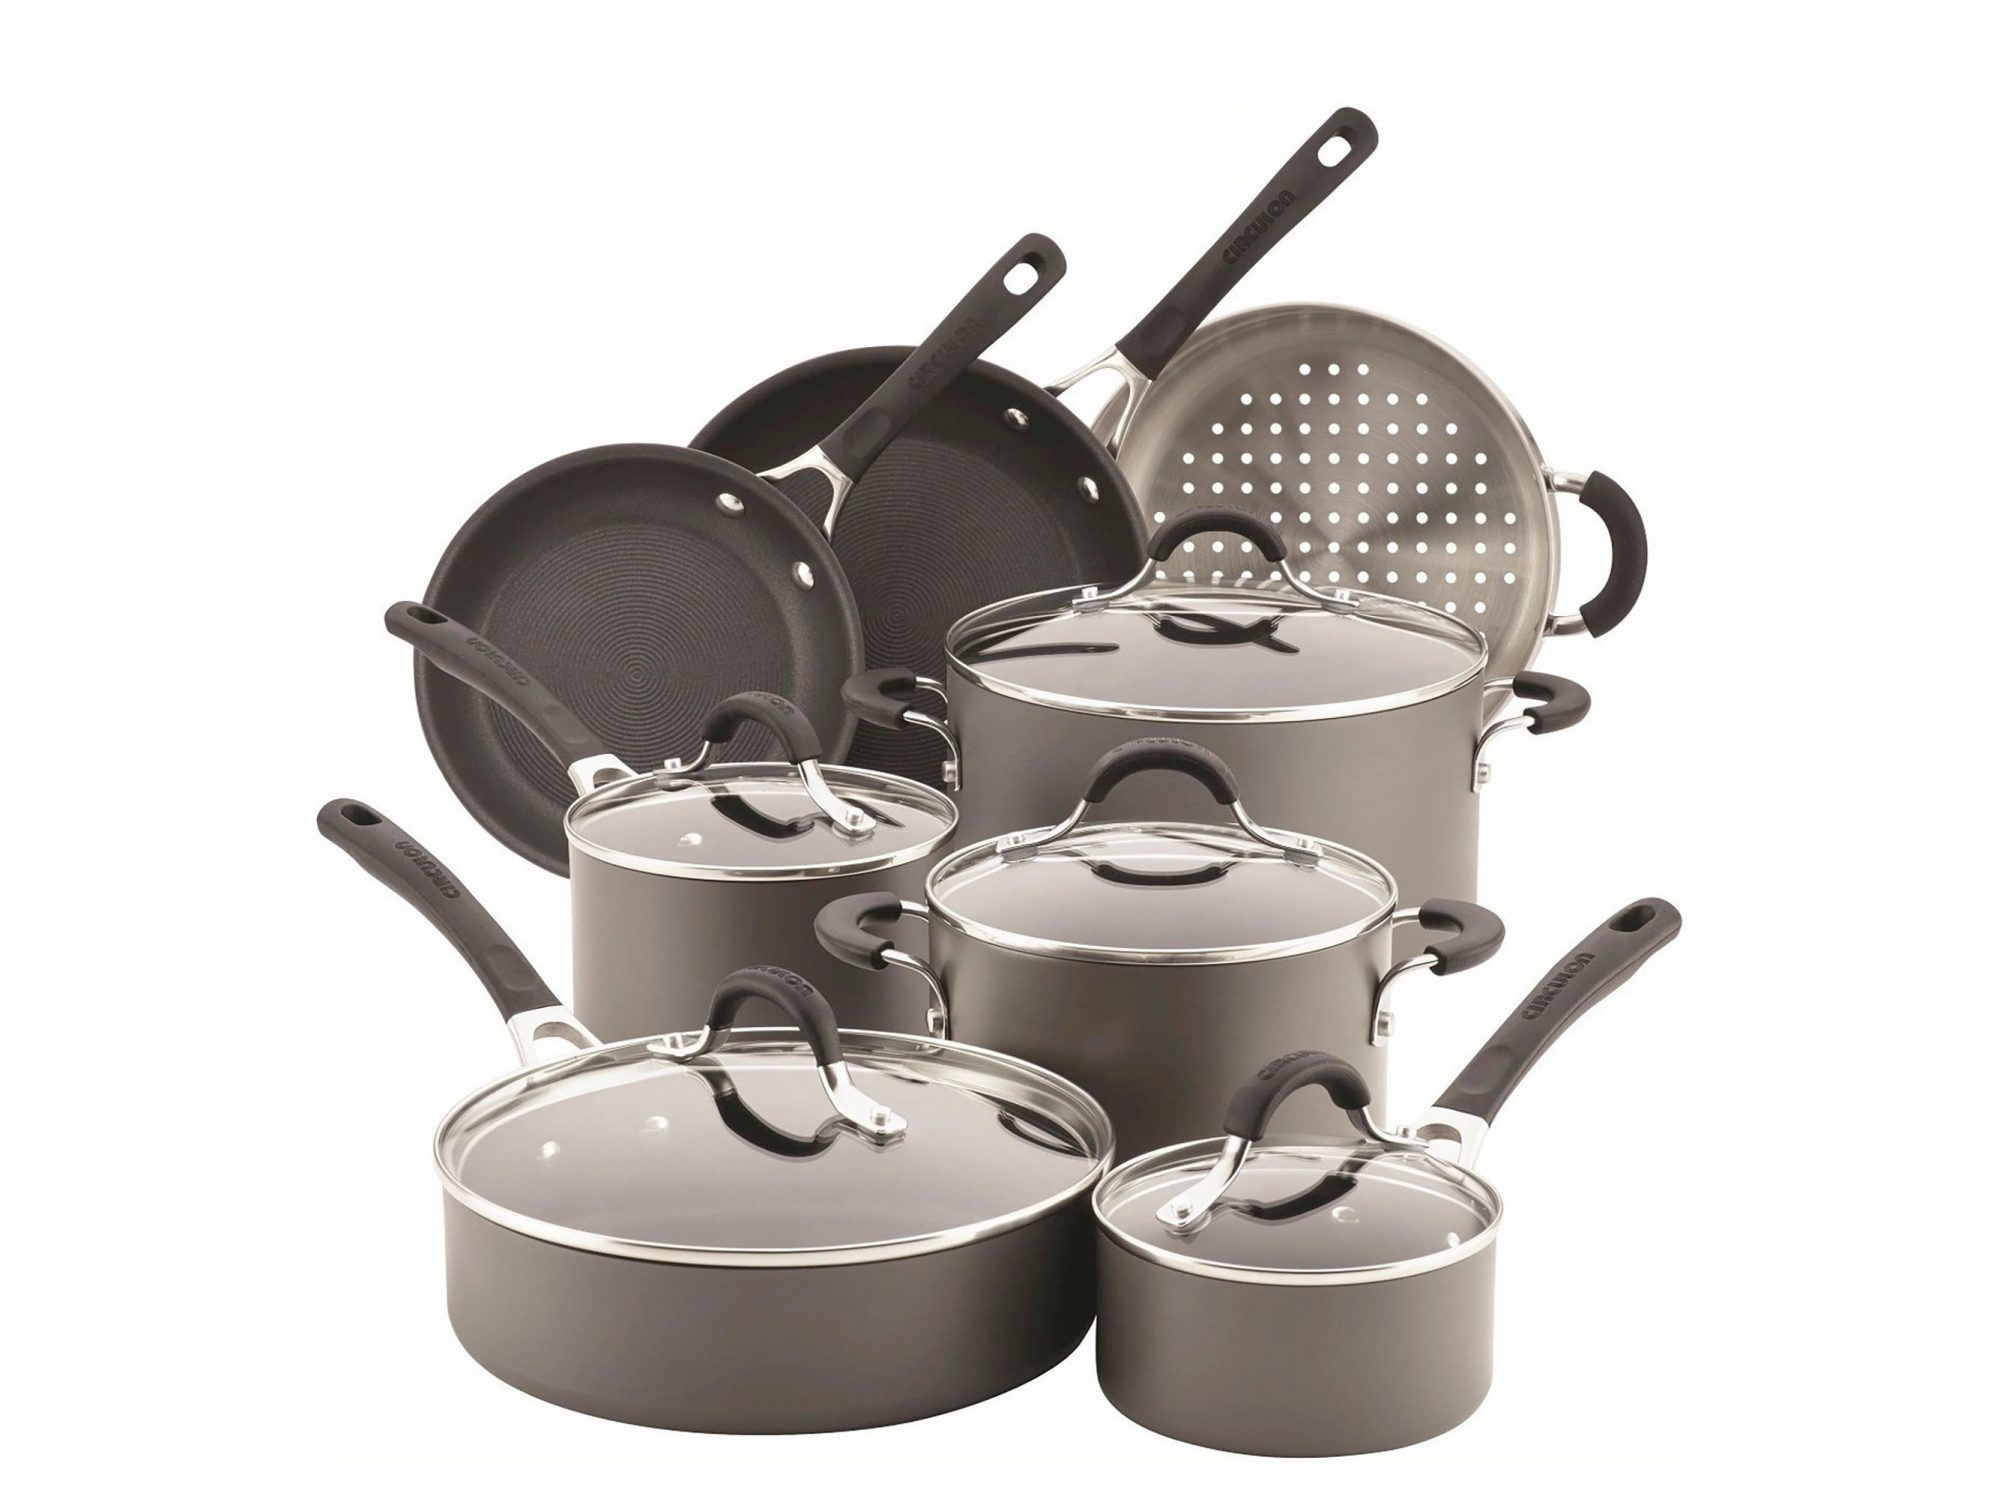 6 November Sale Items Every Costco Shopper Should Know About 1811w-Non-Stick-Set